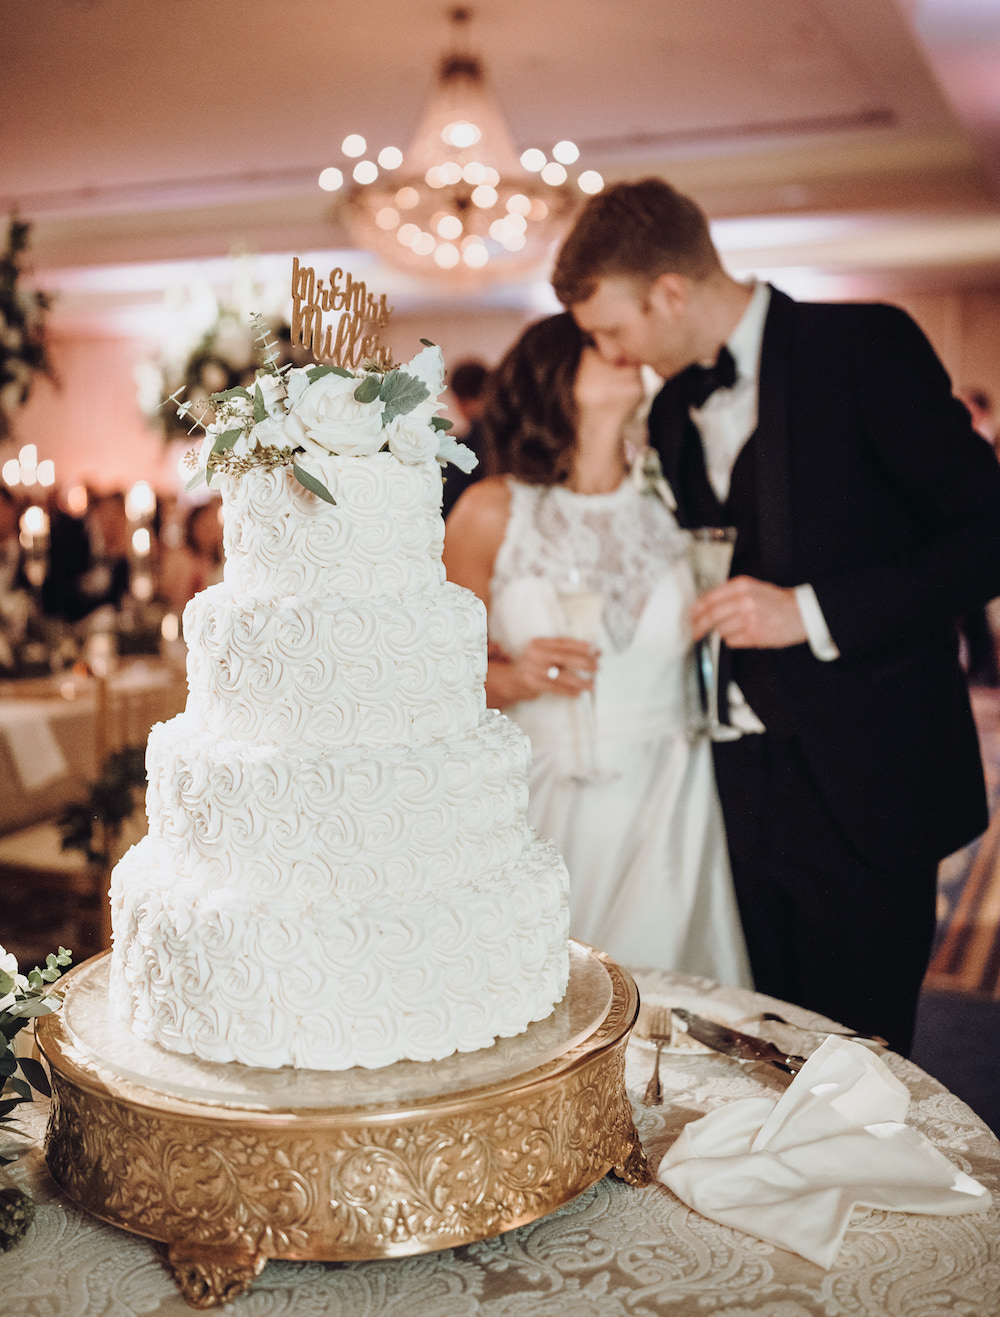 """White four tier cake with white blooms and custom lettering as topper which reads, """"Mr. and Mrs. Miller"""" and bride and groom in background kissing and holding champagne flutes"""